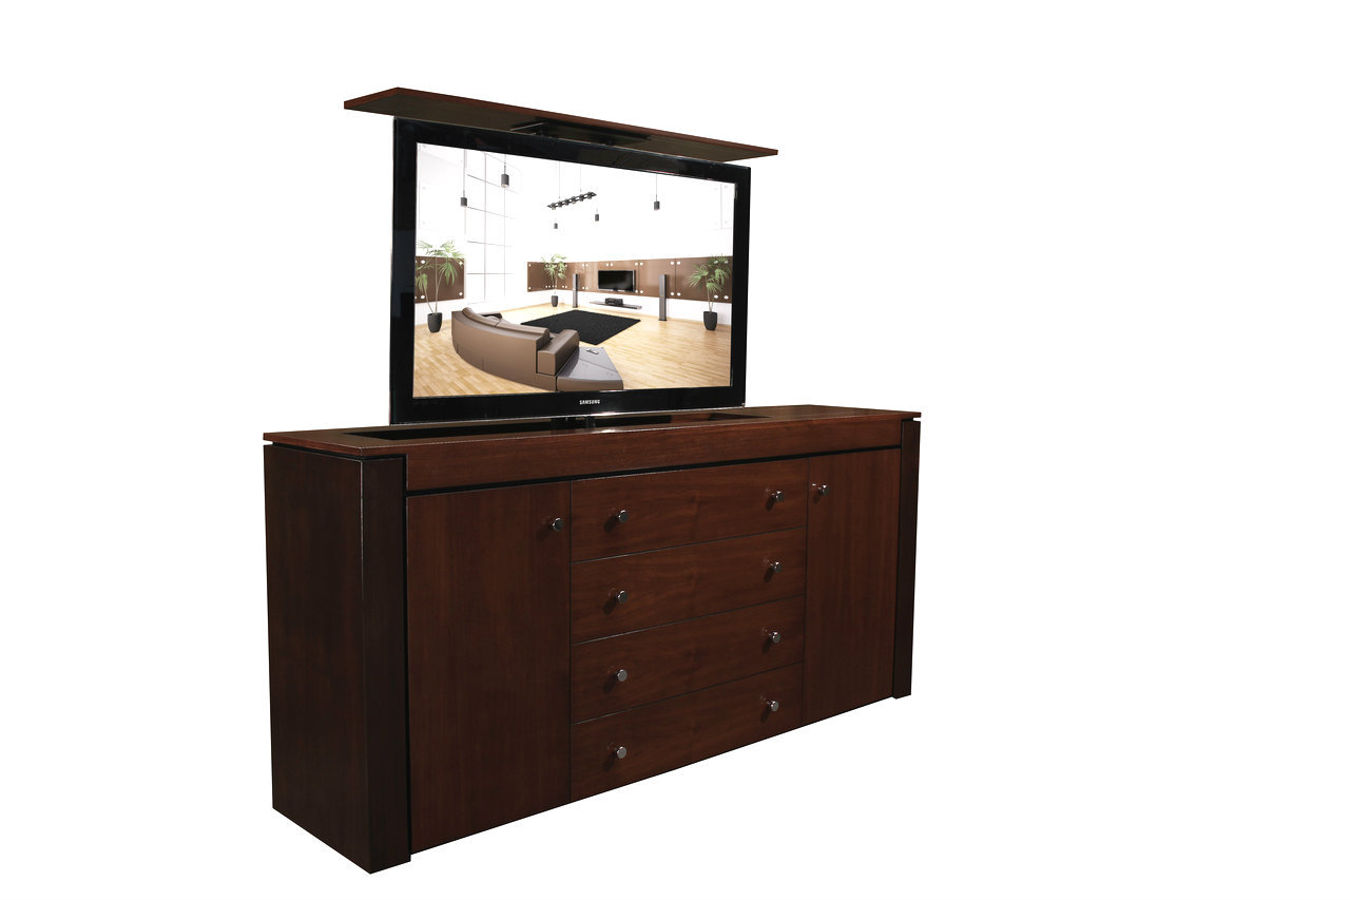 tv lift sideboard inspirierendes design f r wohnm bel. Black Bedroom Furniture Sets. Home Design Ideas